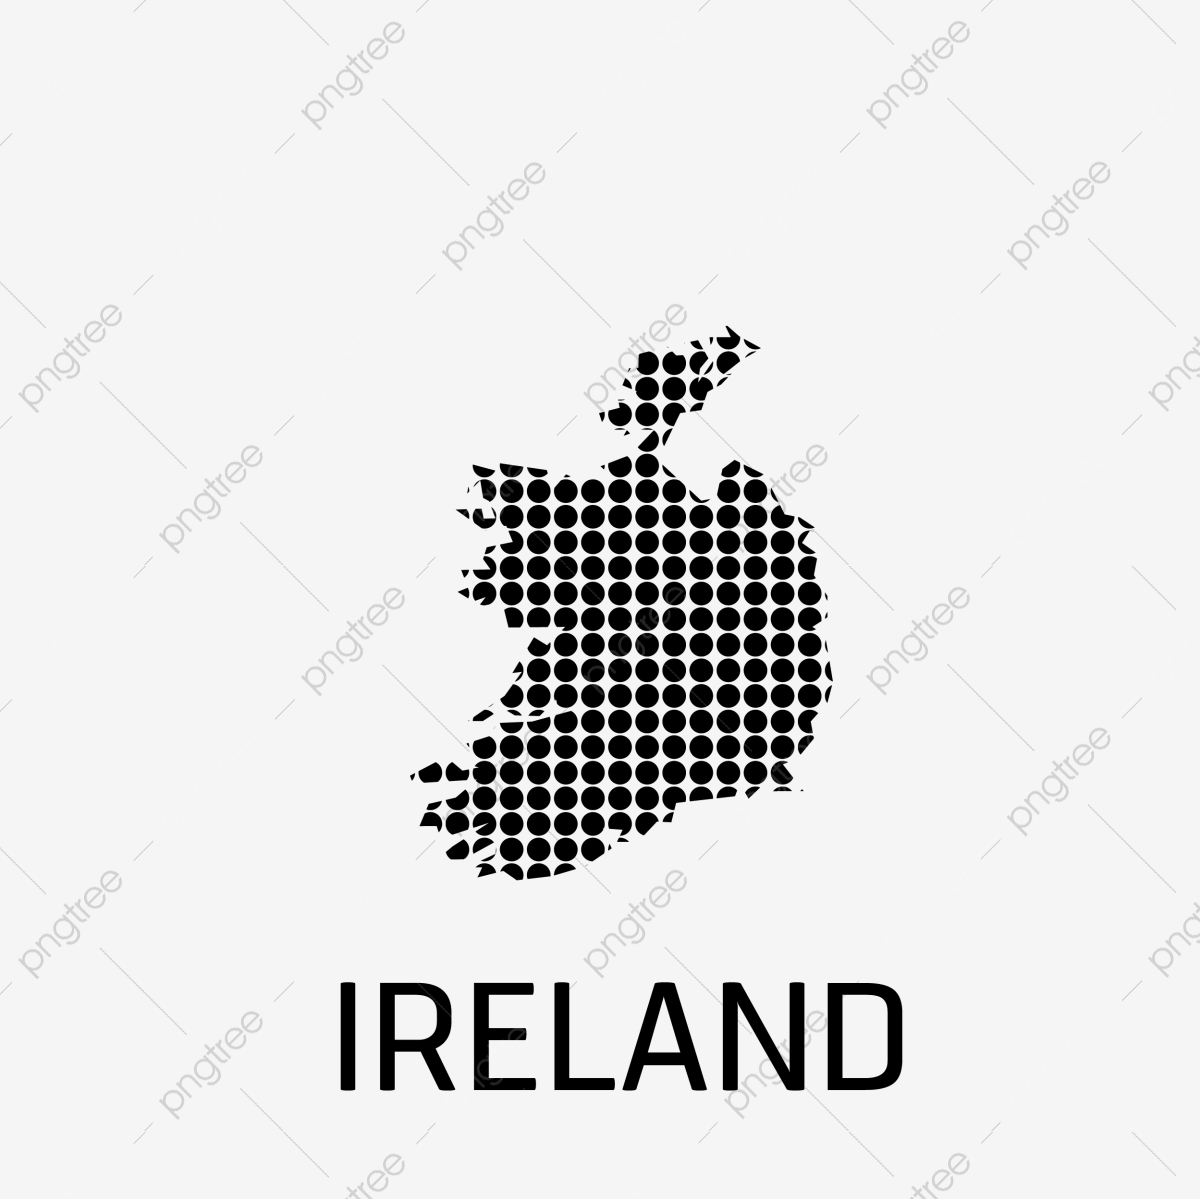 World Map Of Ireland.Ireland Map Ireland Map World Png And Vector With Transparent